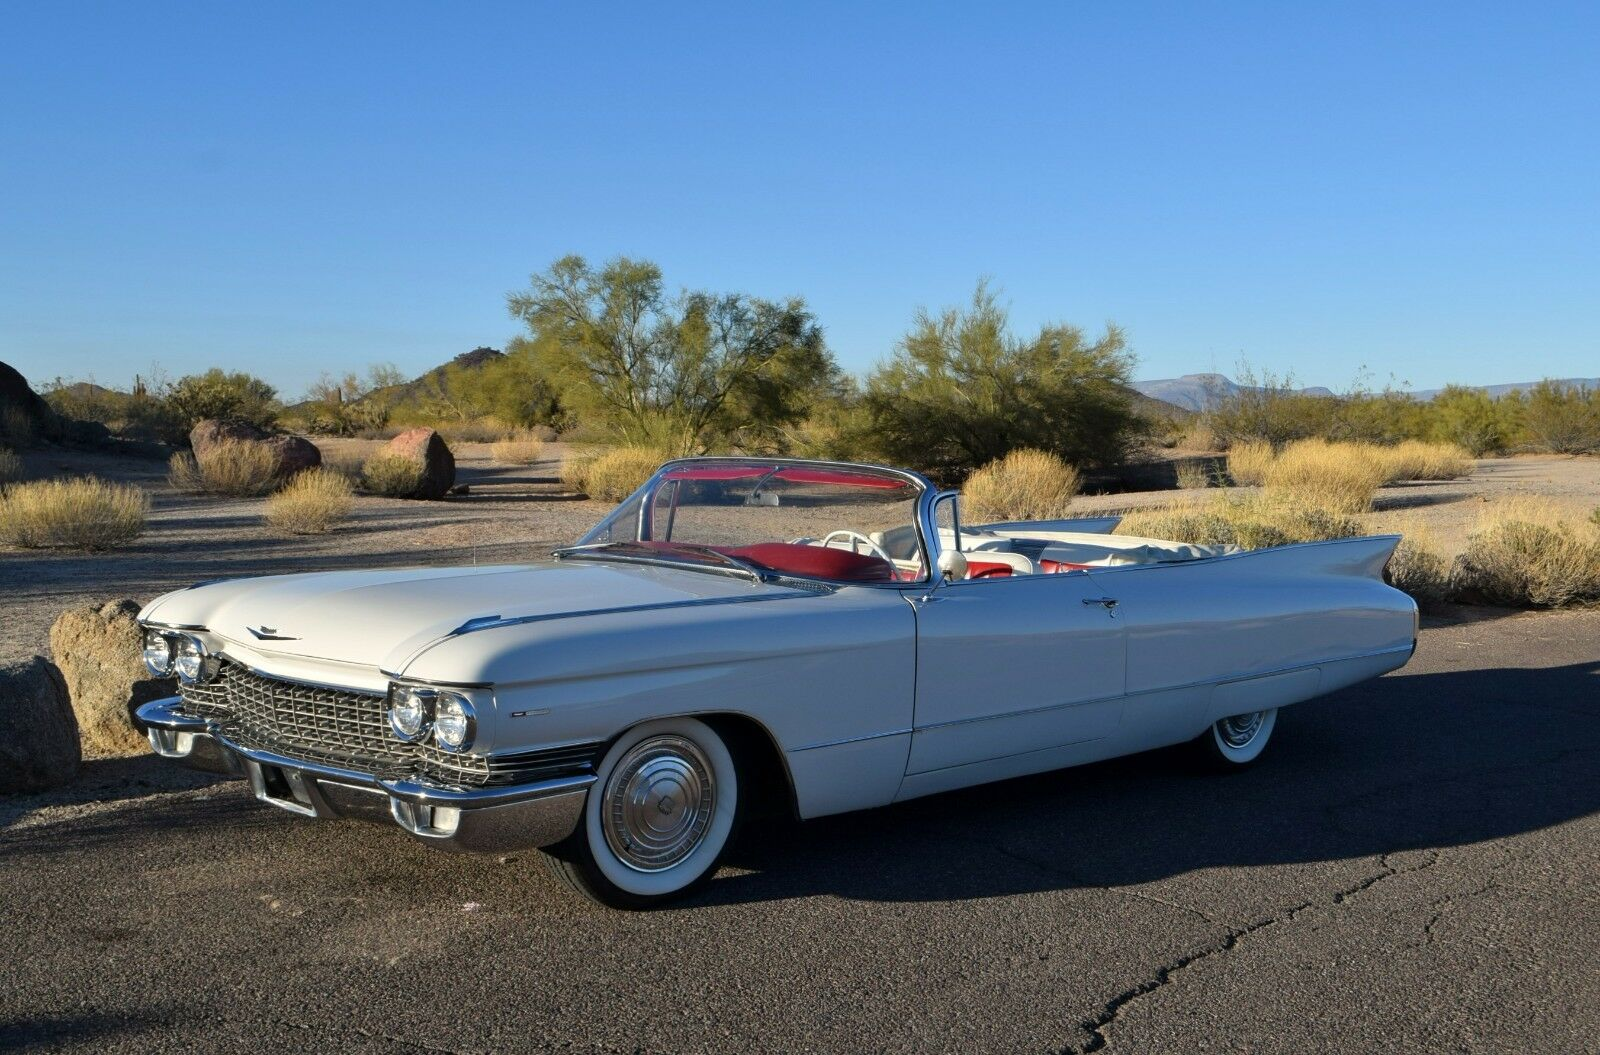 1960 Cadillac Deville Series 62 Convertible 1960 Cadillac Series 62 Convertible - Fresh Paint, Interior, & Top - NICE Driver